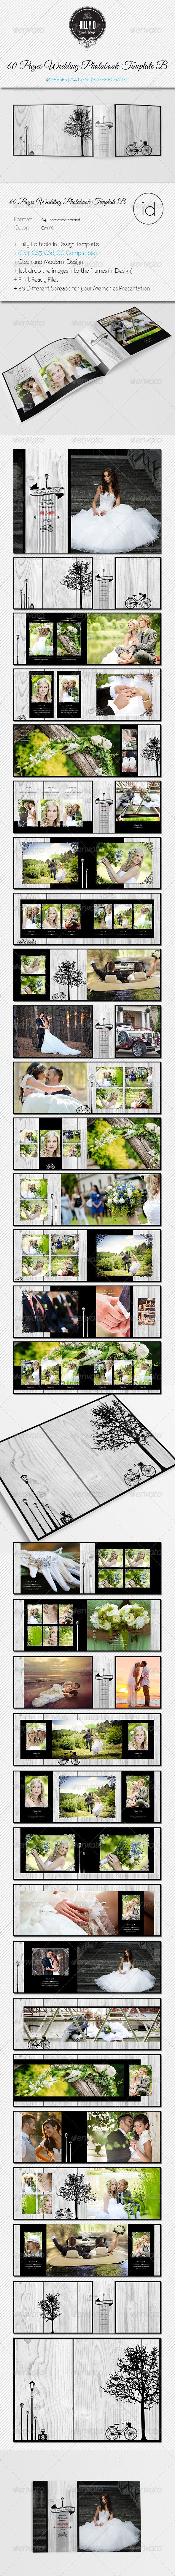 60 Pages Wedding PhotobookTemplate Be